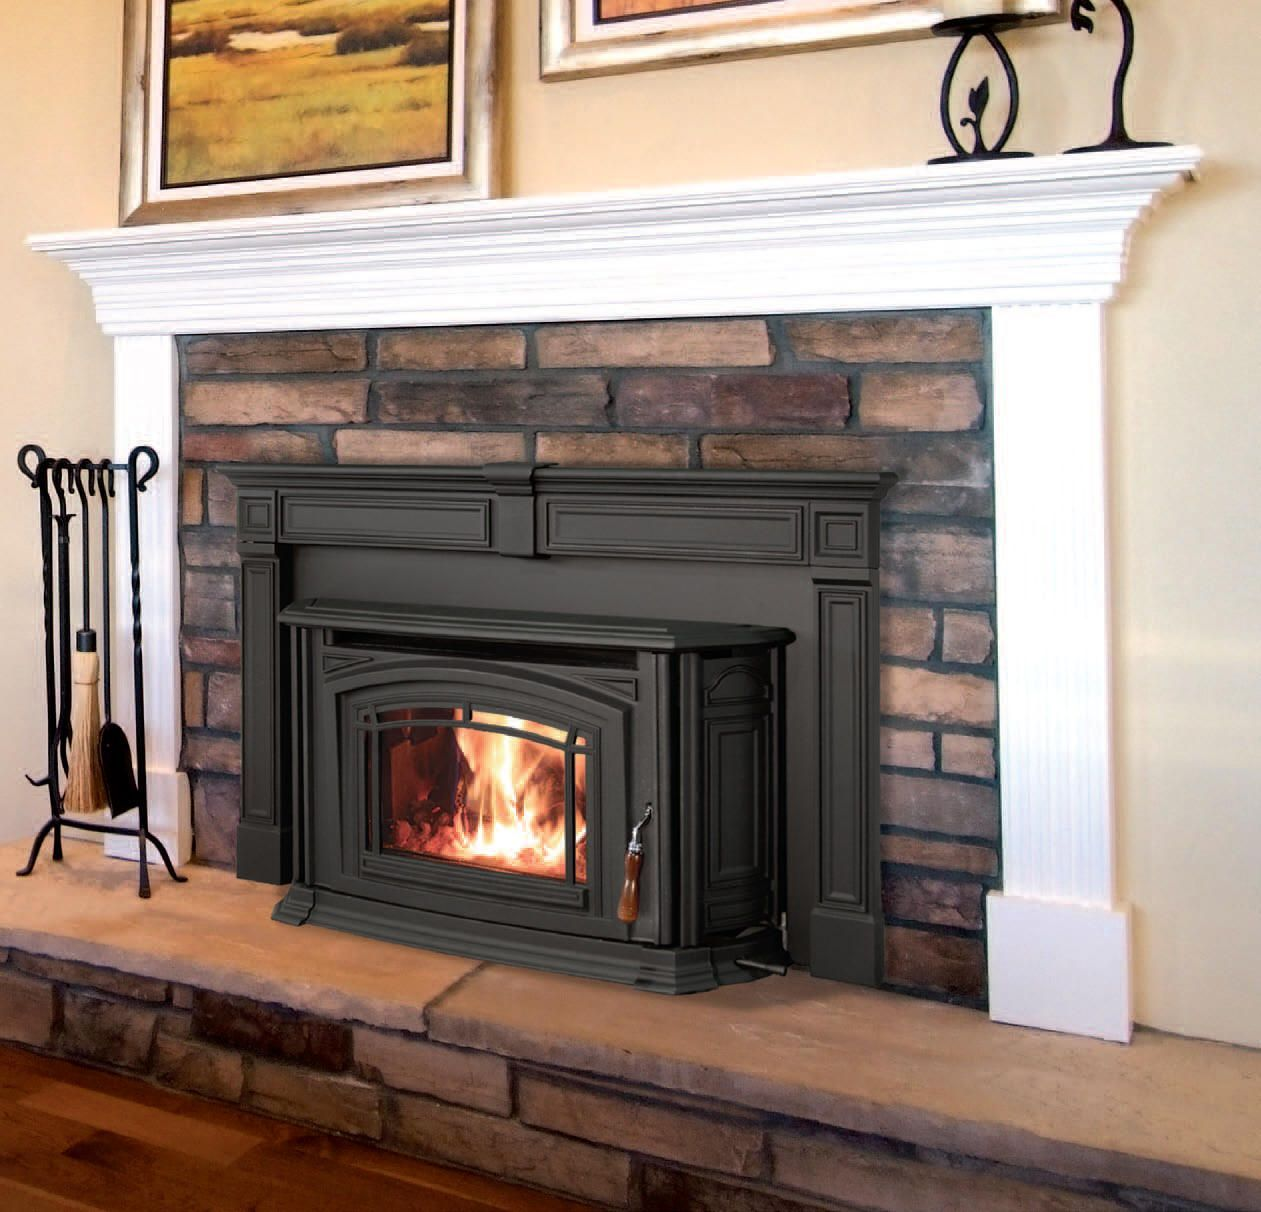 Wood Pellet Fireplace Insert Fresh I Like This Pellet Stove with A Mantel